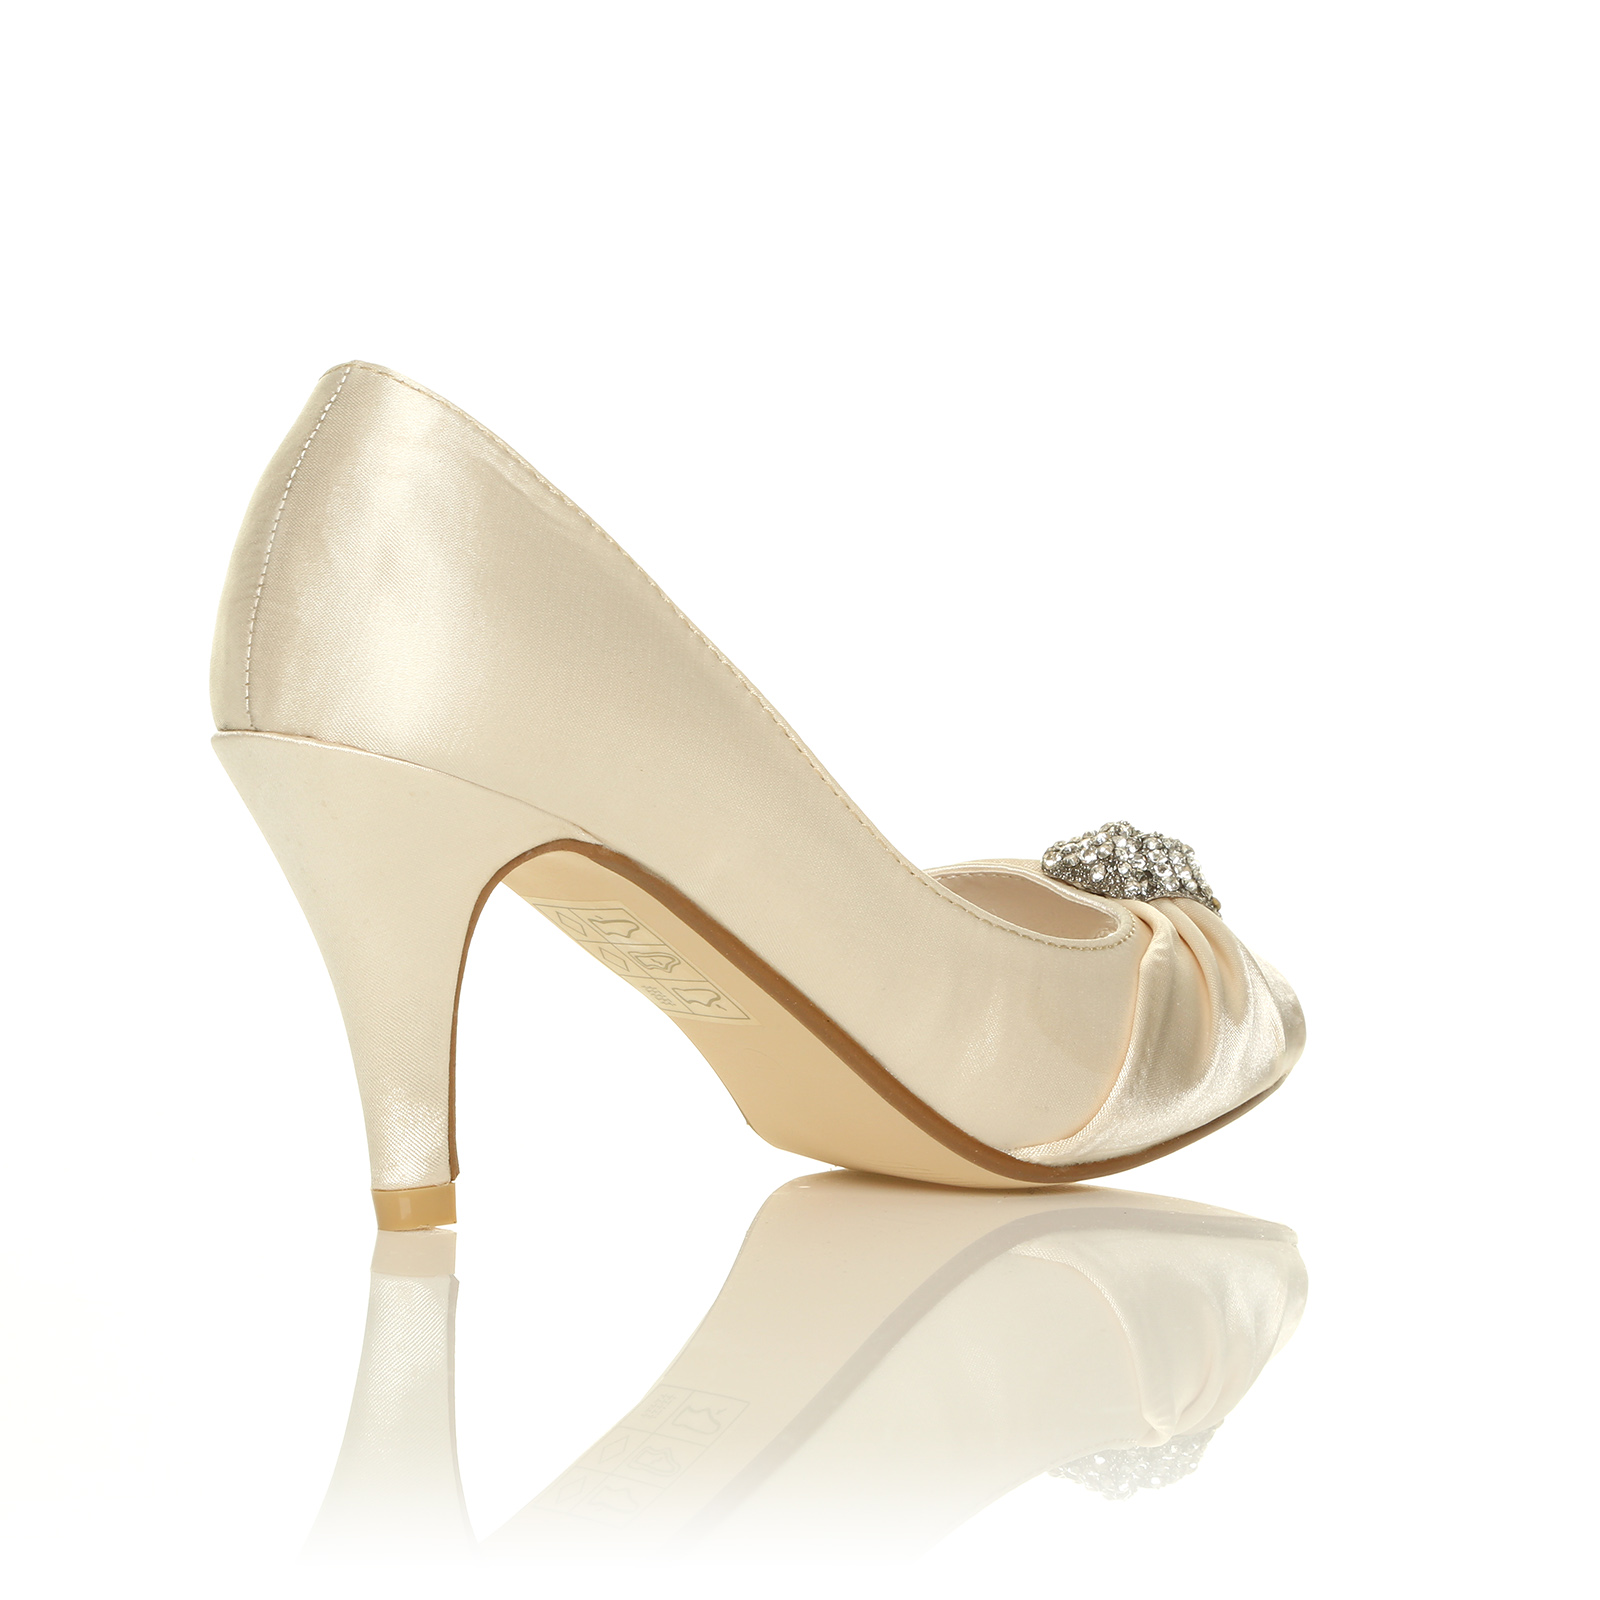 LADIES IVORY WHITE SATIN LOW HEEL BRIDAL PROM PARTY BRIDESMAID SANDAL SHOES SIZE